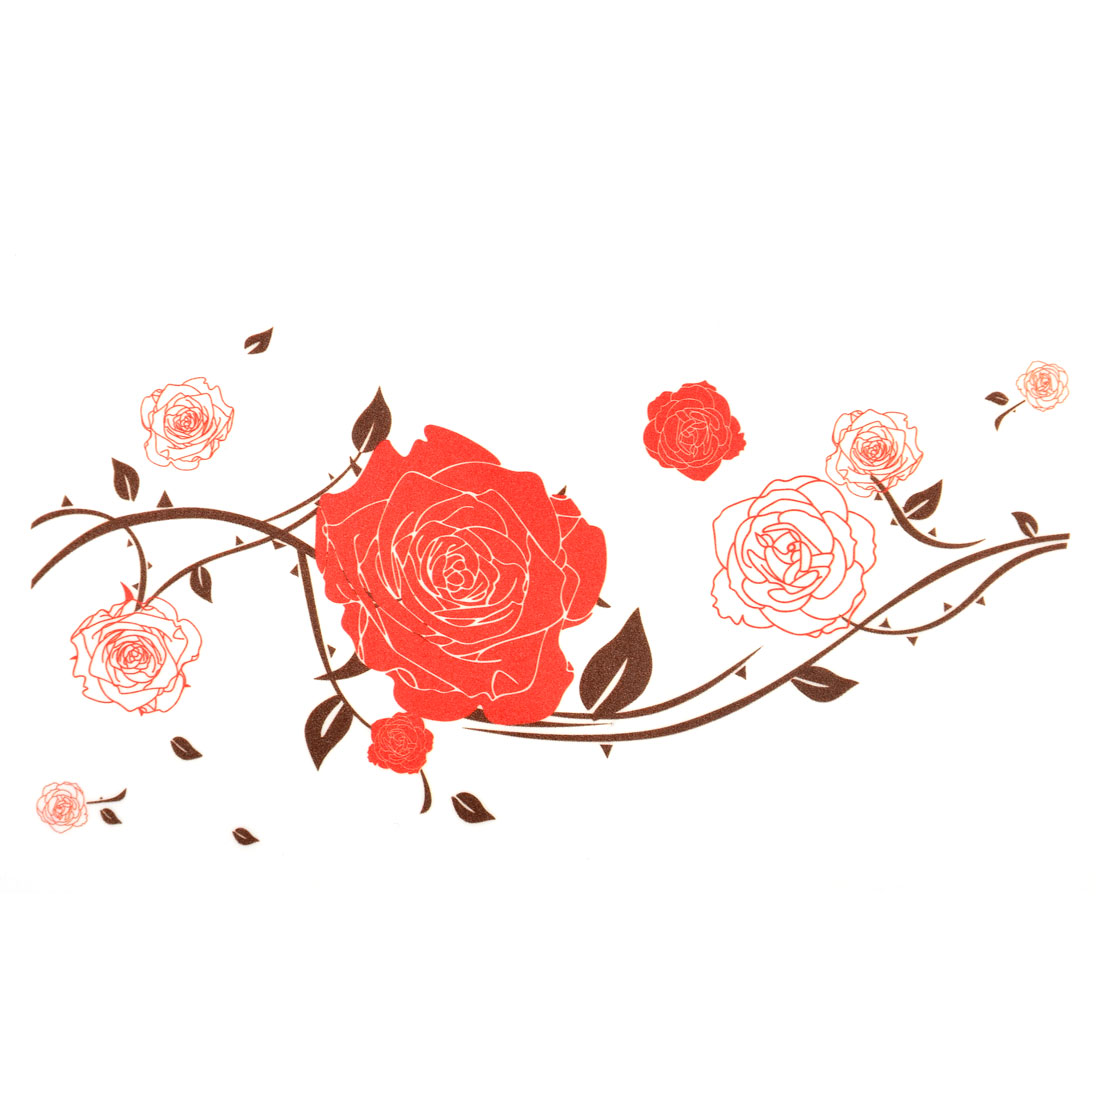 Living Room Blooming Rose Pattern Wall Sticker Decal Mural 90 x 60cm